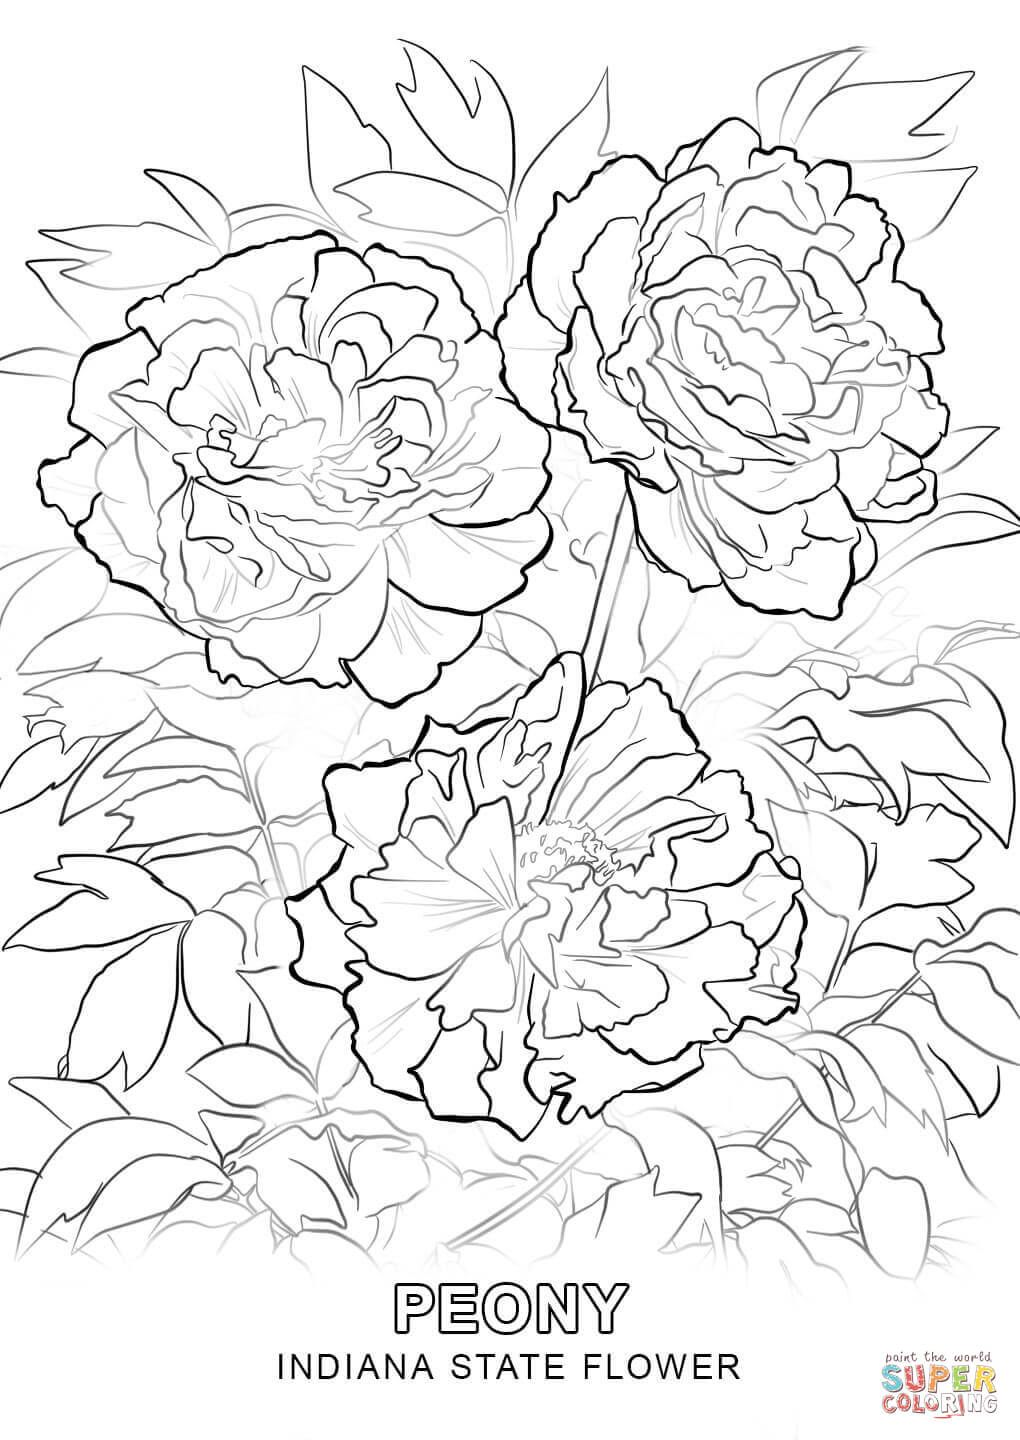 Click The Indiana State Flower Coloring Pages To View Printable